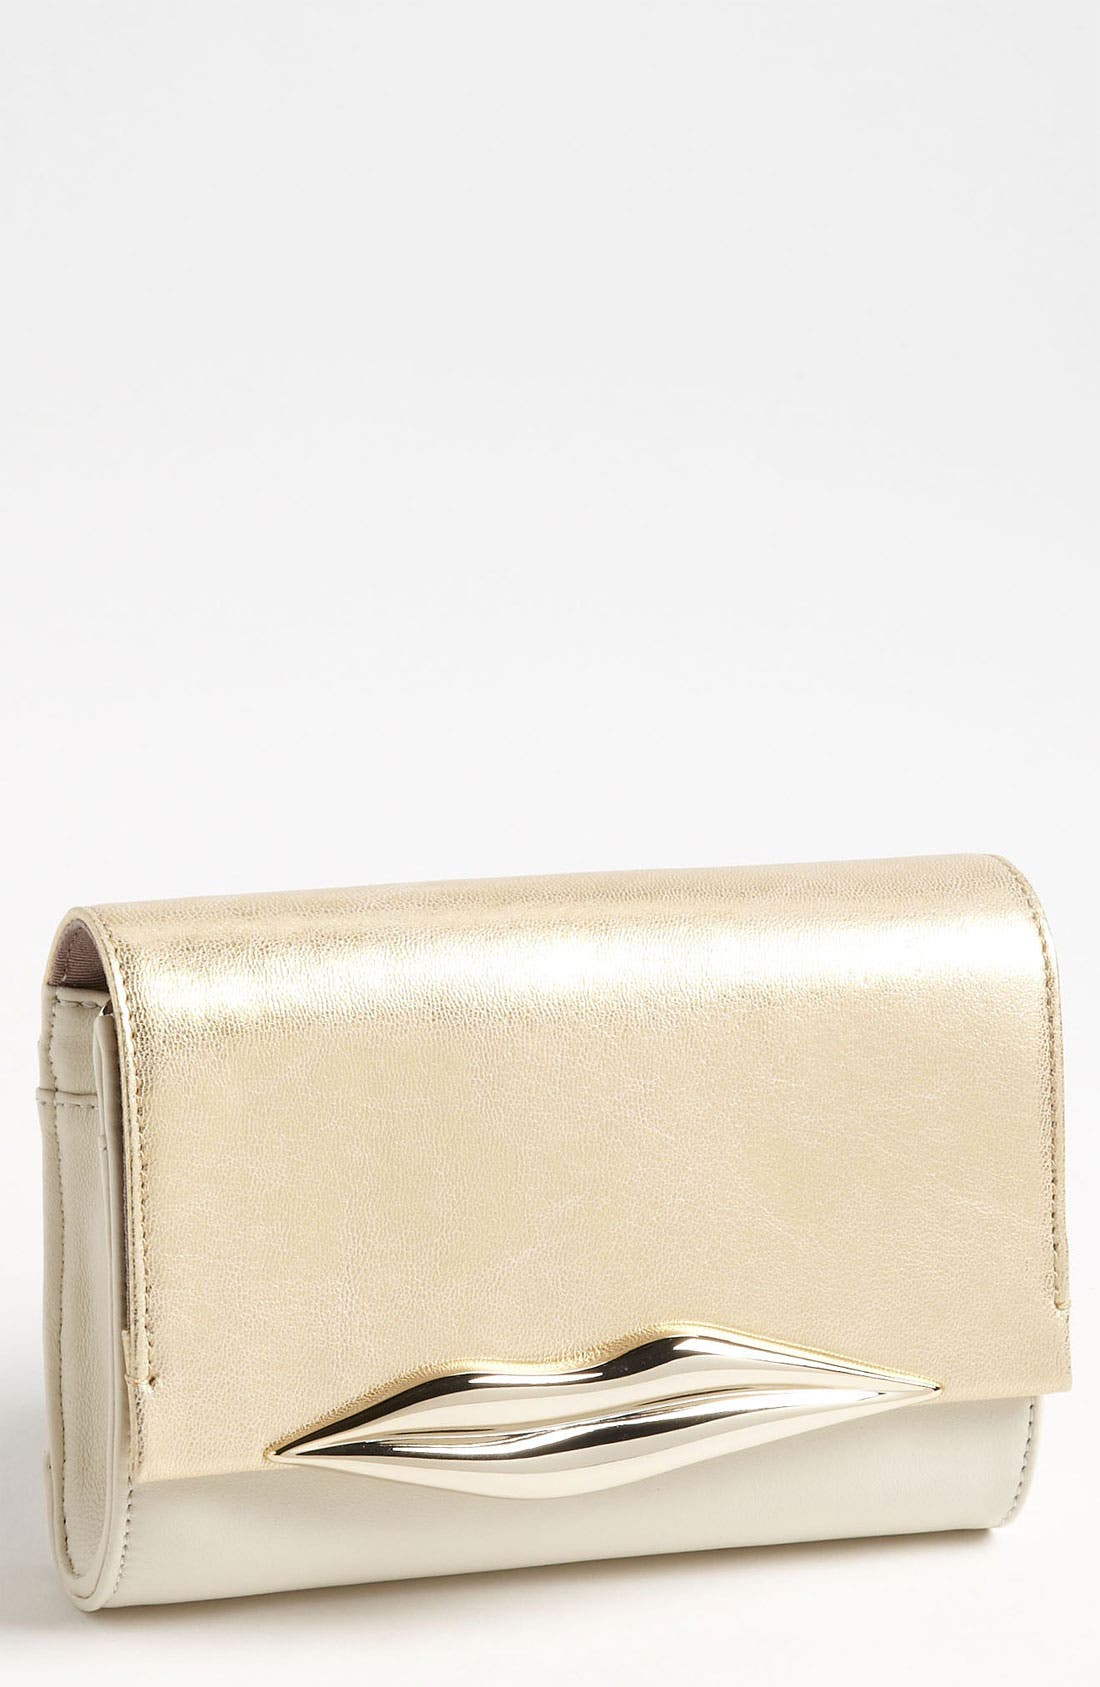 Alternate Image 1 Selected - Diane von Furstenberg 'Lips - Mini' Metallic Leather Clutch